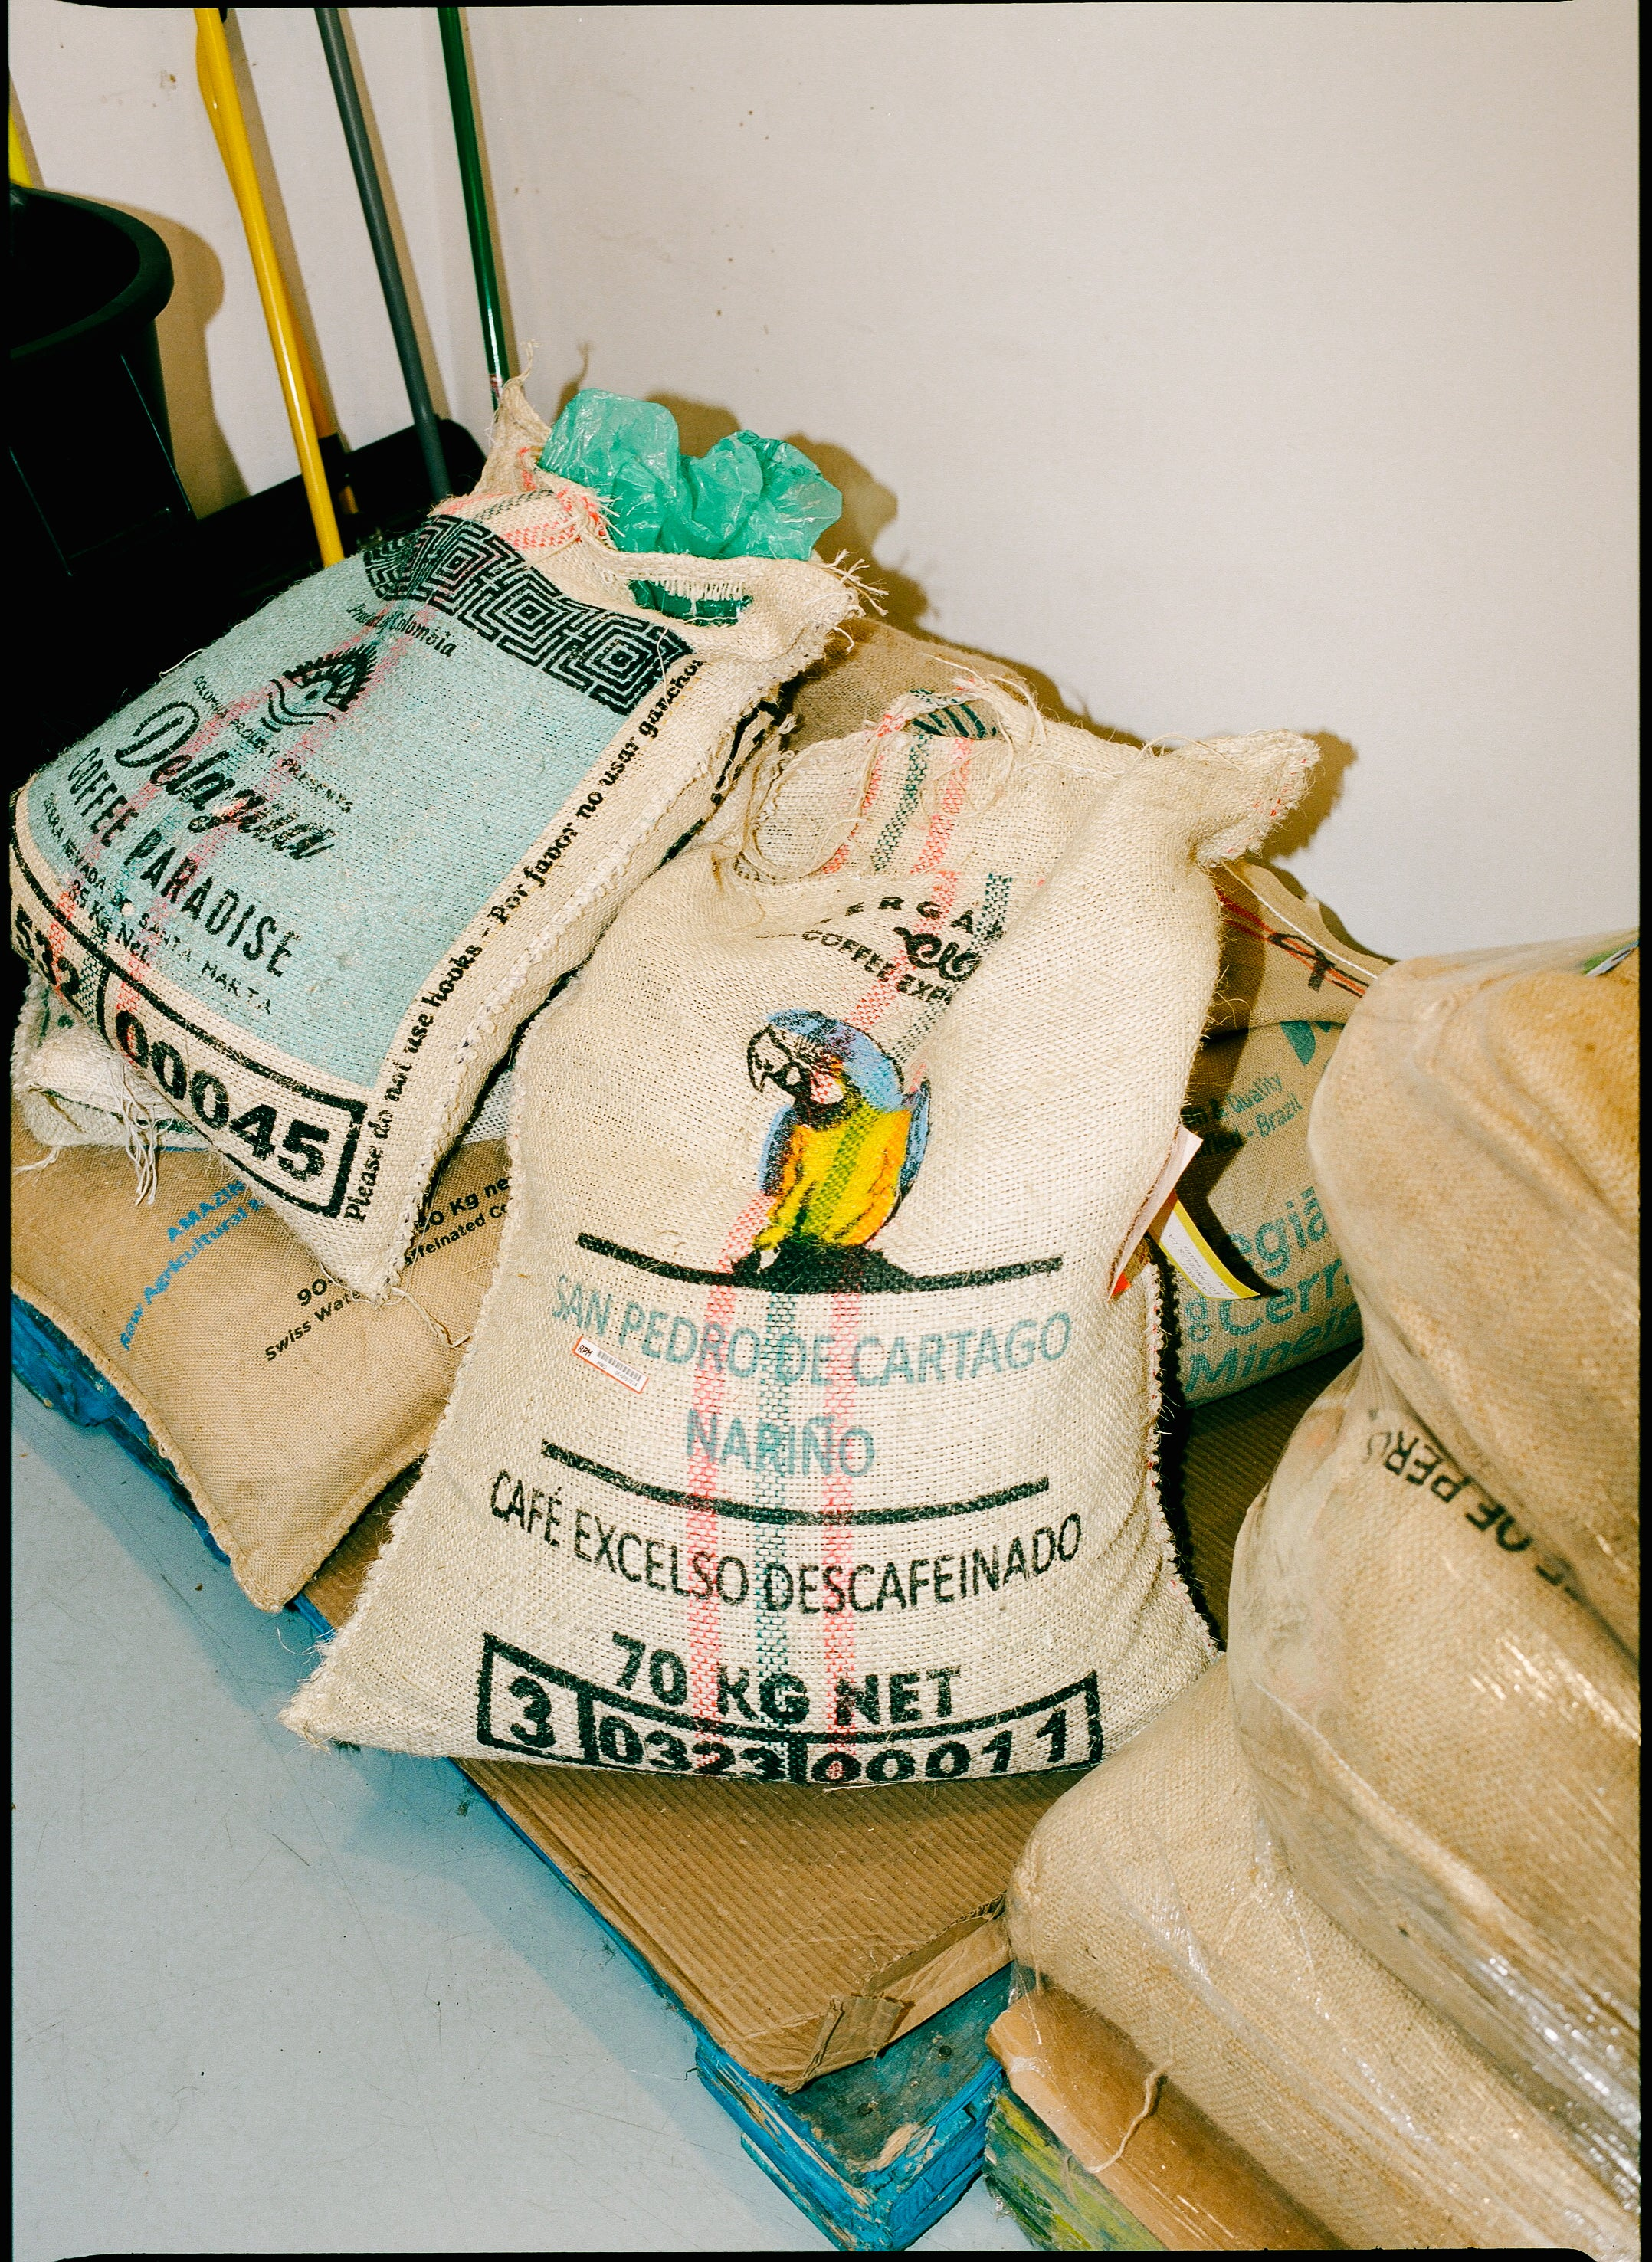 Grainpro bags of green coffee from Colombia | Canyon Coffee